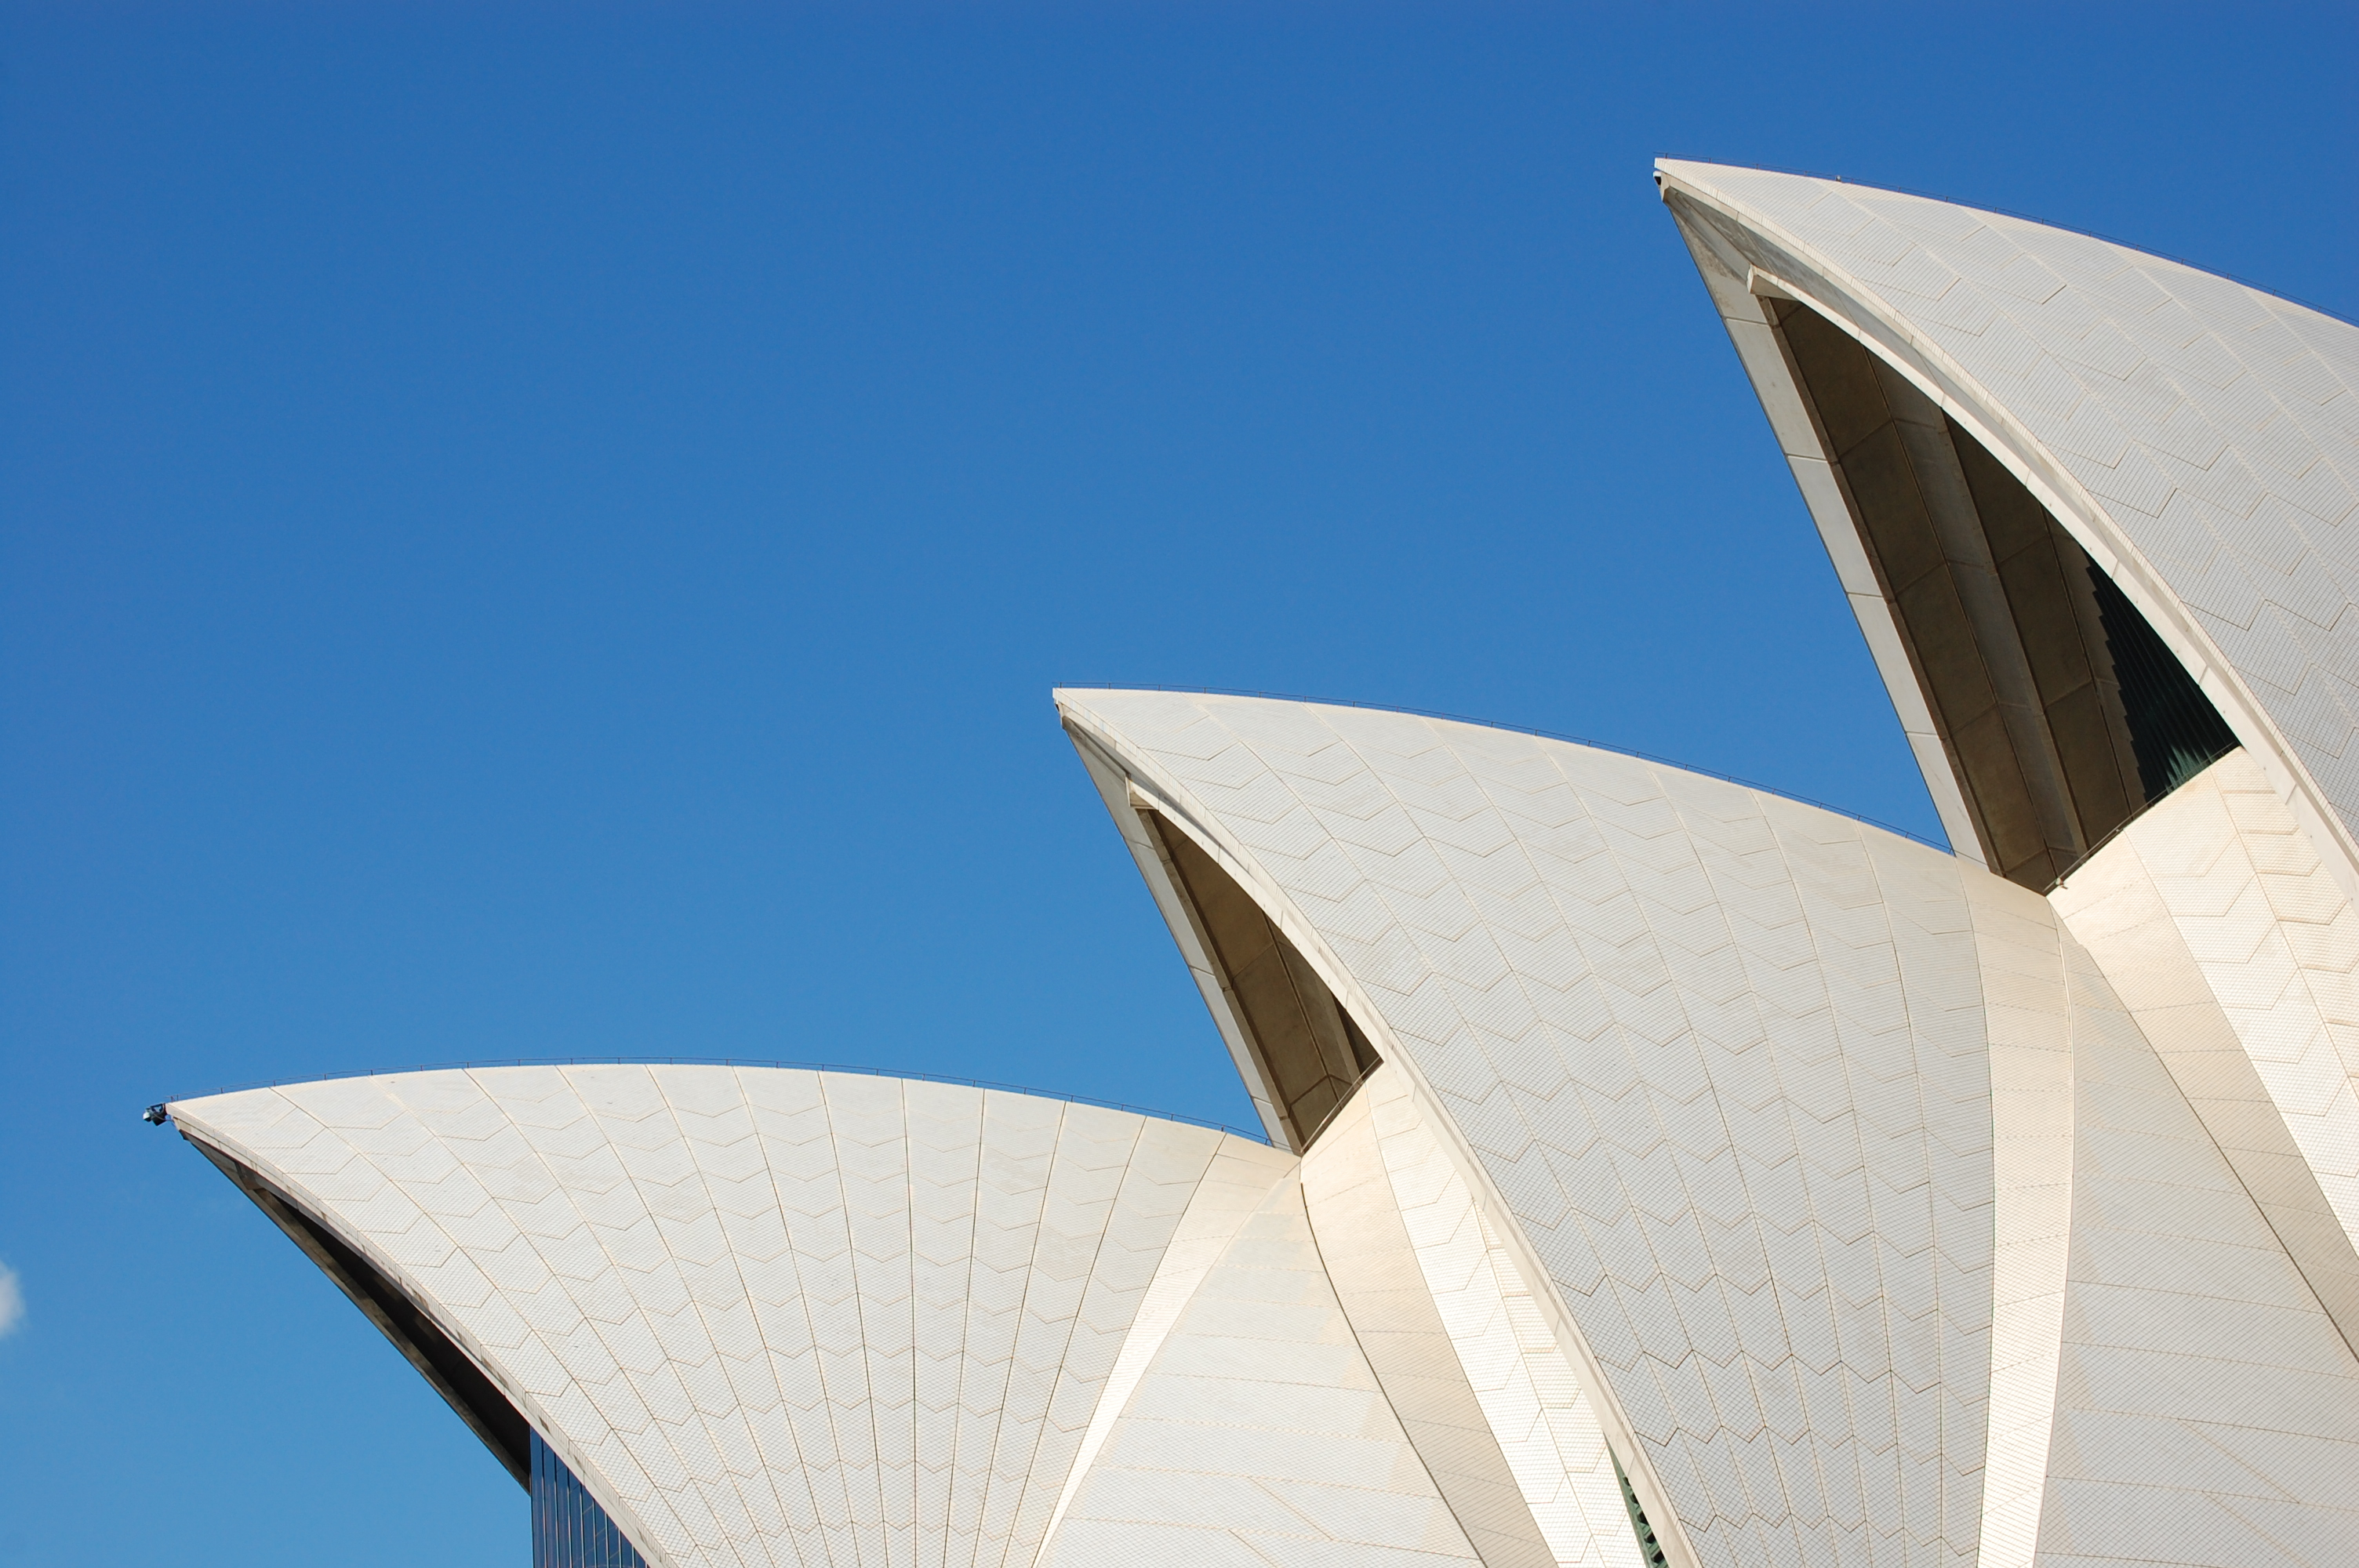 Sydney-Opera-House-Sails-Against-Blue-Sky-458111135_3008x2000